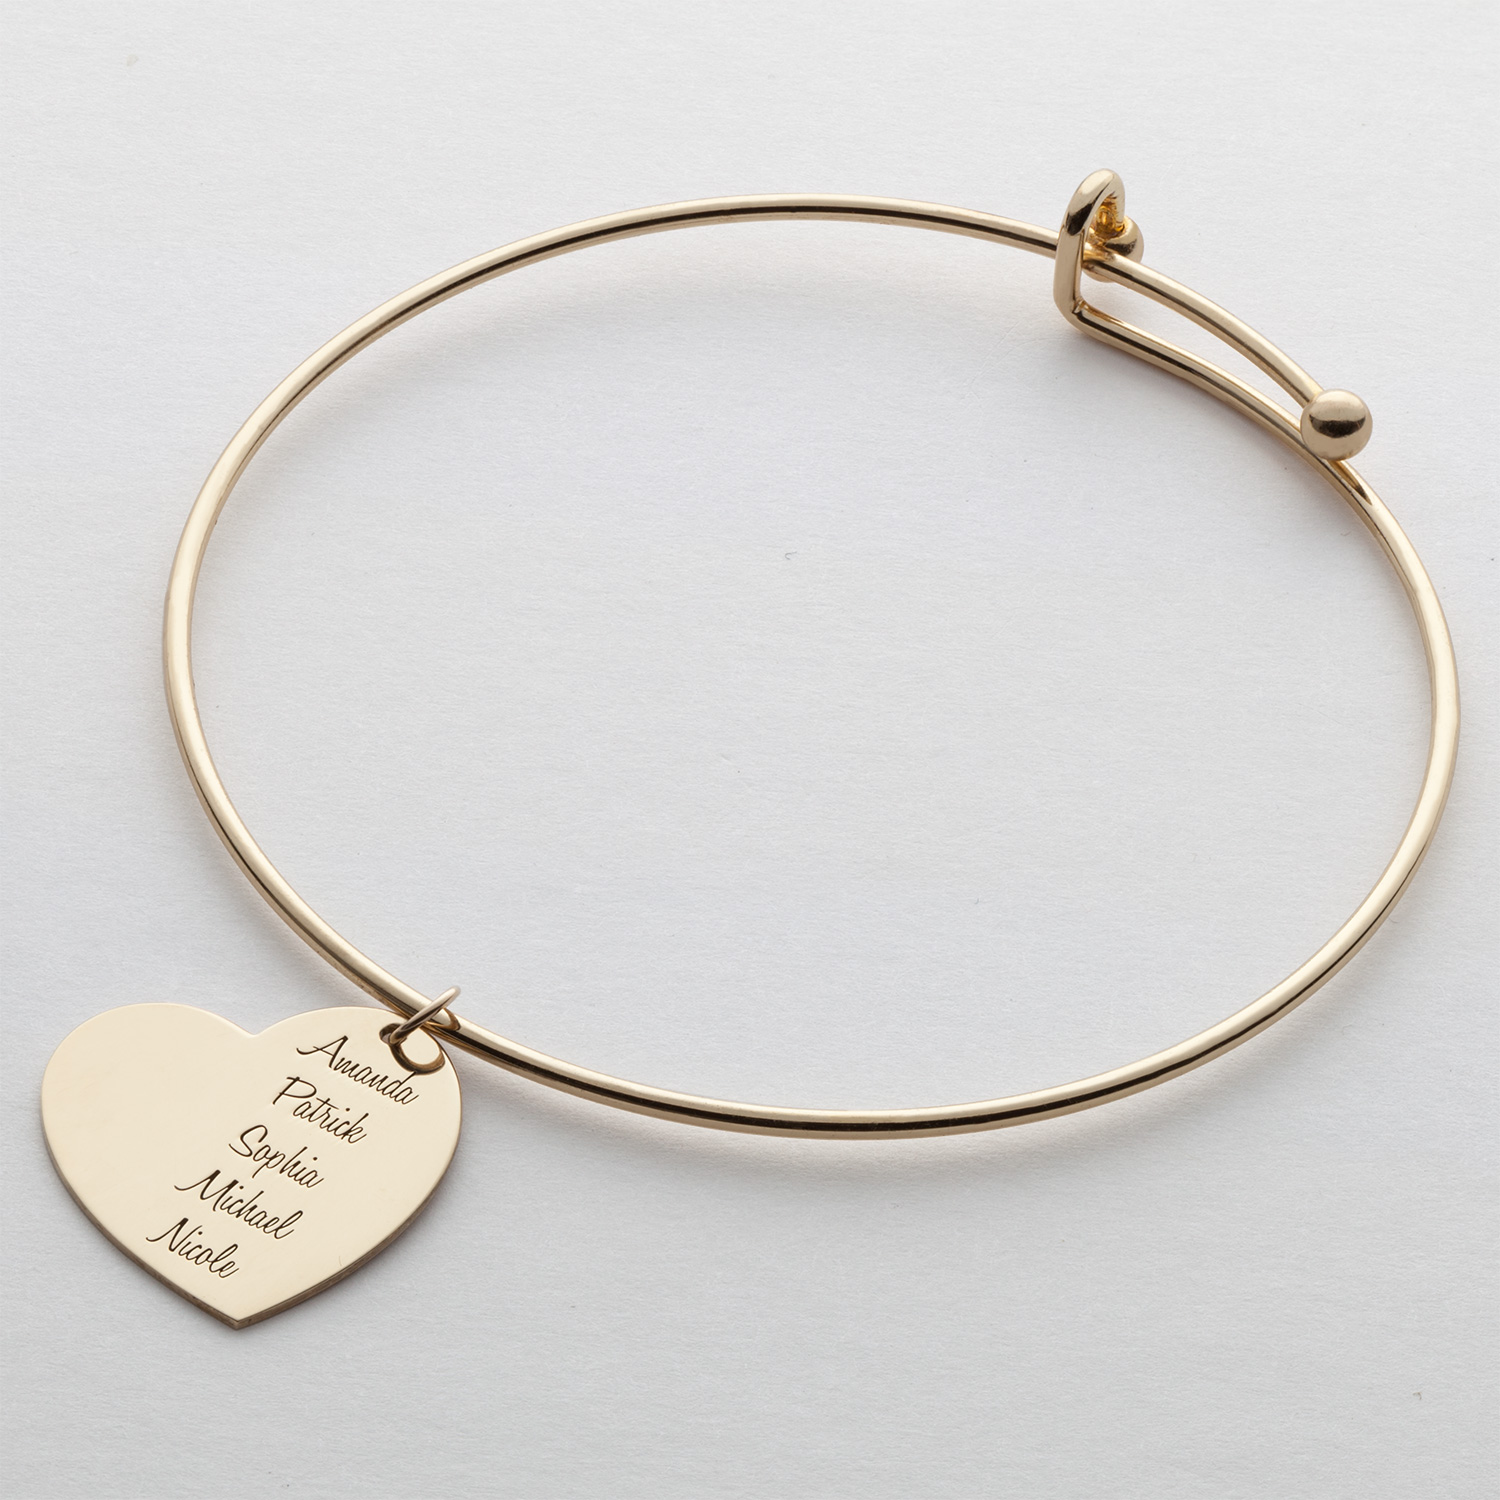 Expandable Charm Bracelets: Expandable Bangle Bracelet With Personalized Sterling